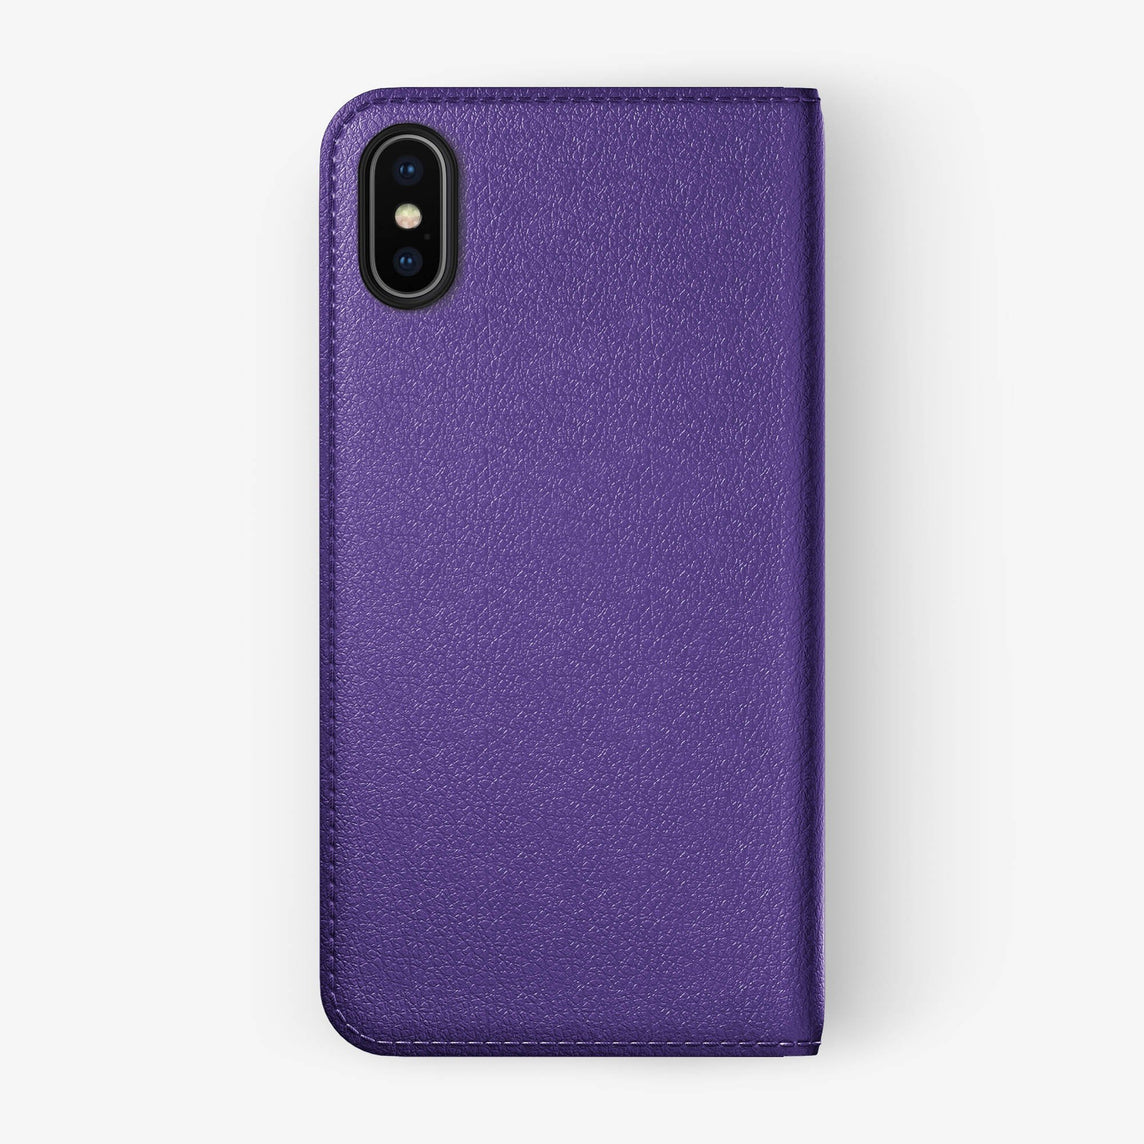 Violet Calfskin iPhone Folio Case for iPhone X finishing black - Hadoro Luxury Cases img5